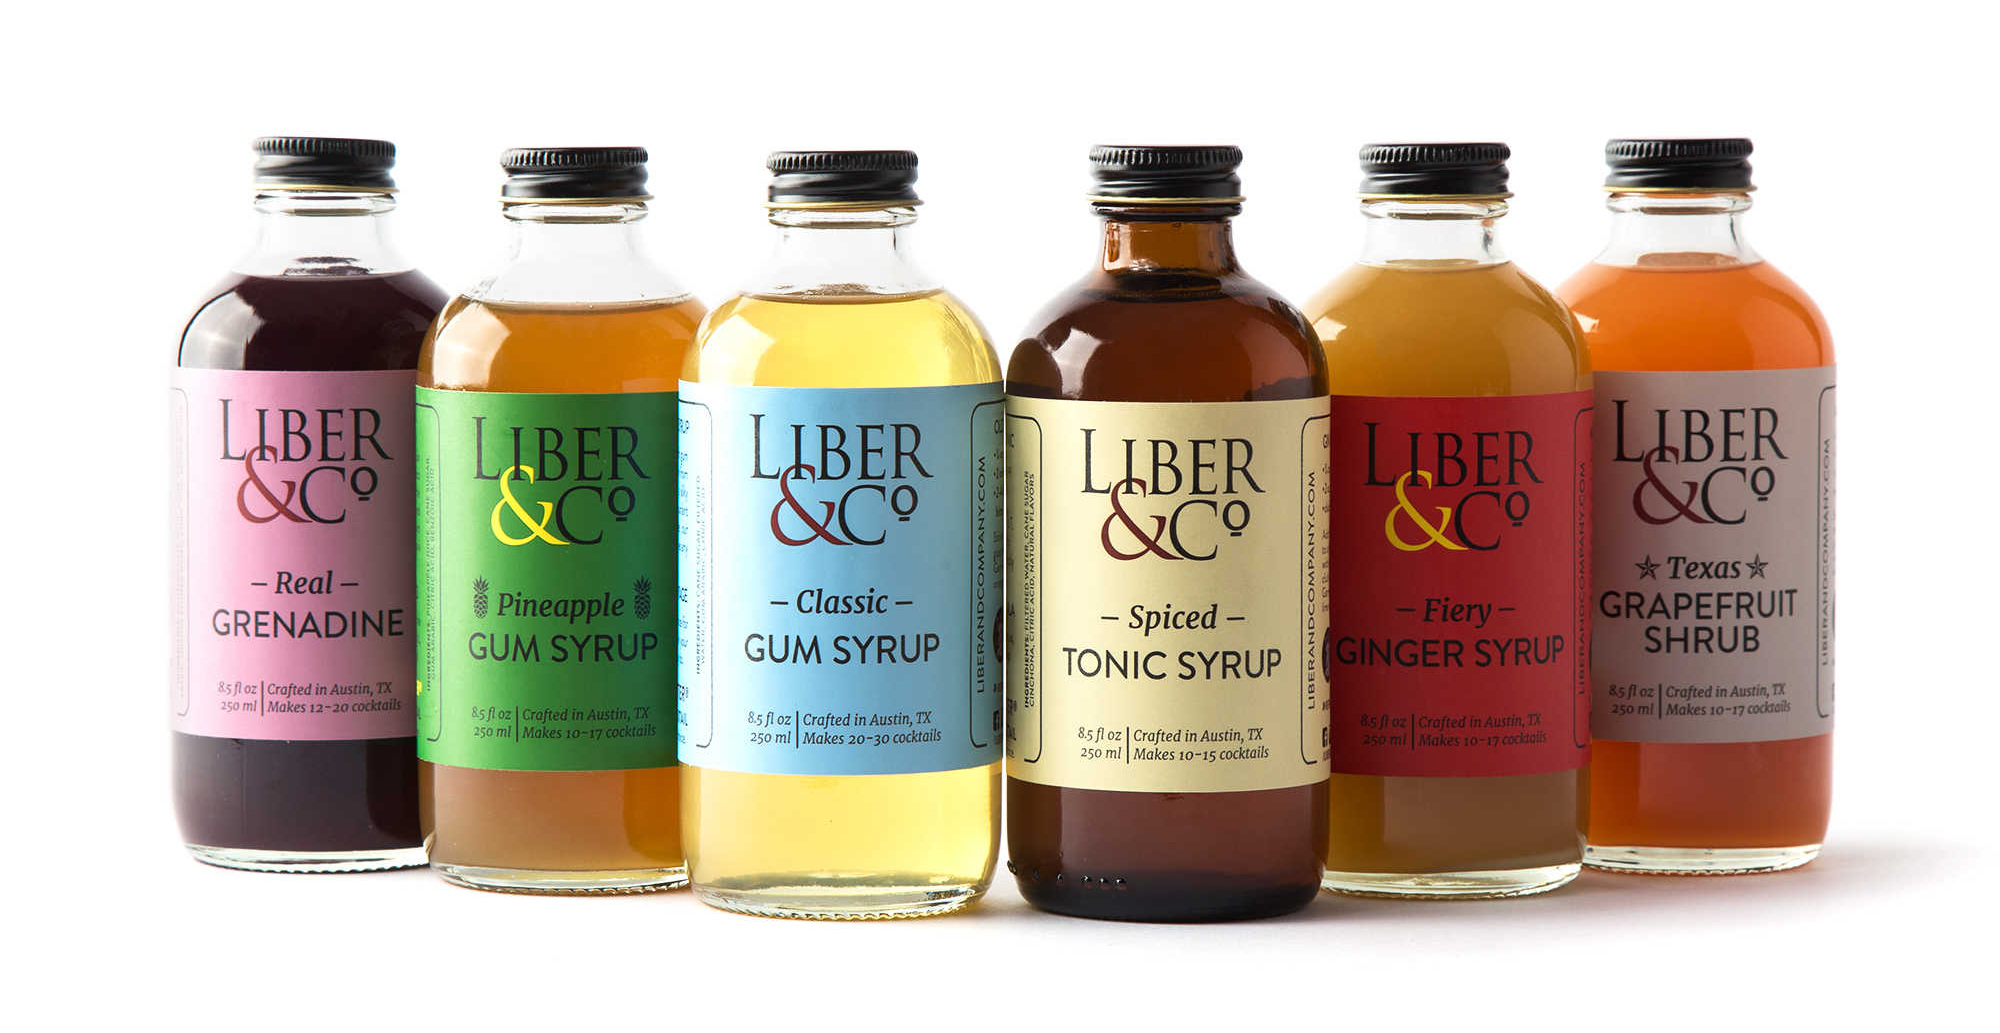 Liber & Co. Syrups & Shrubs